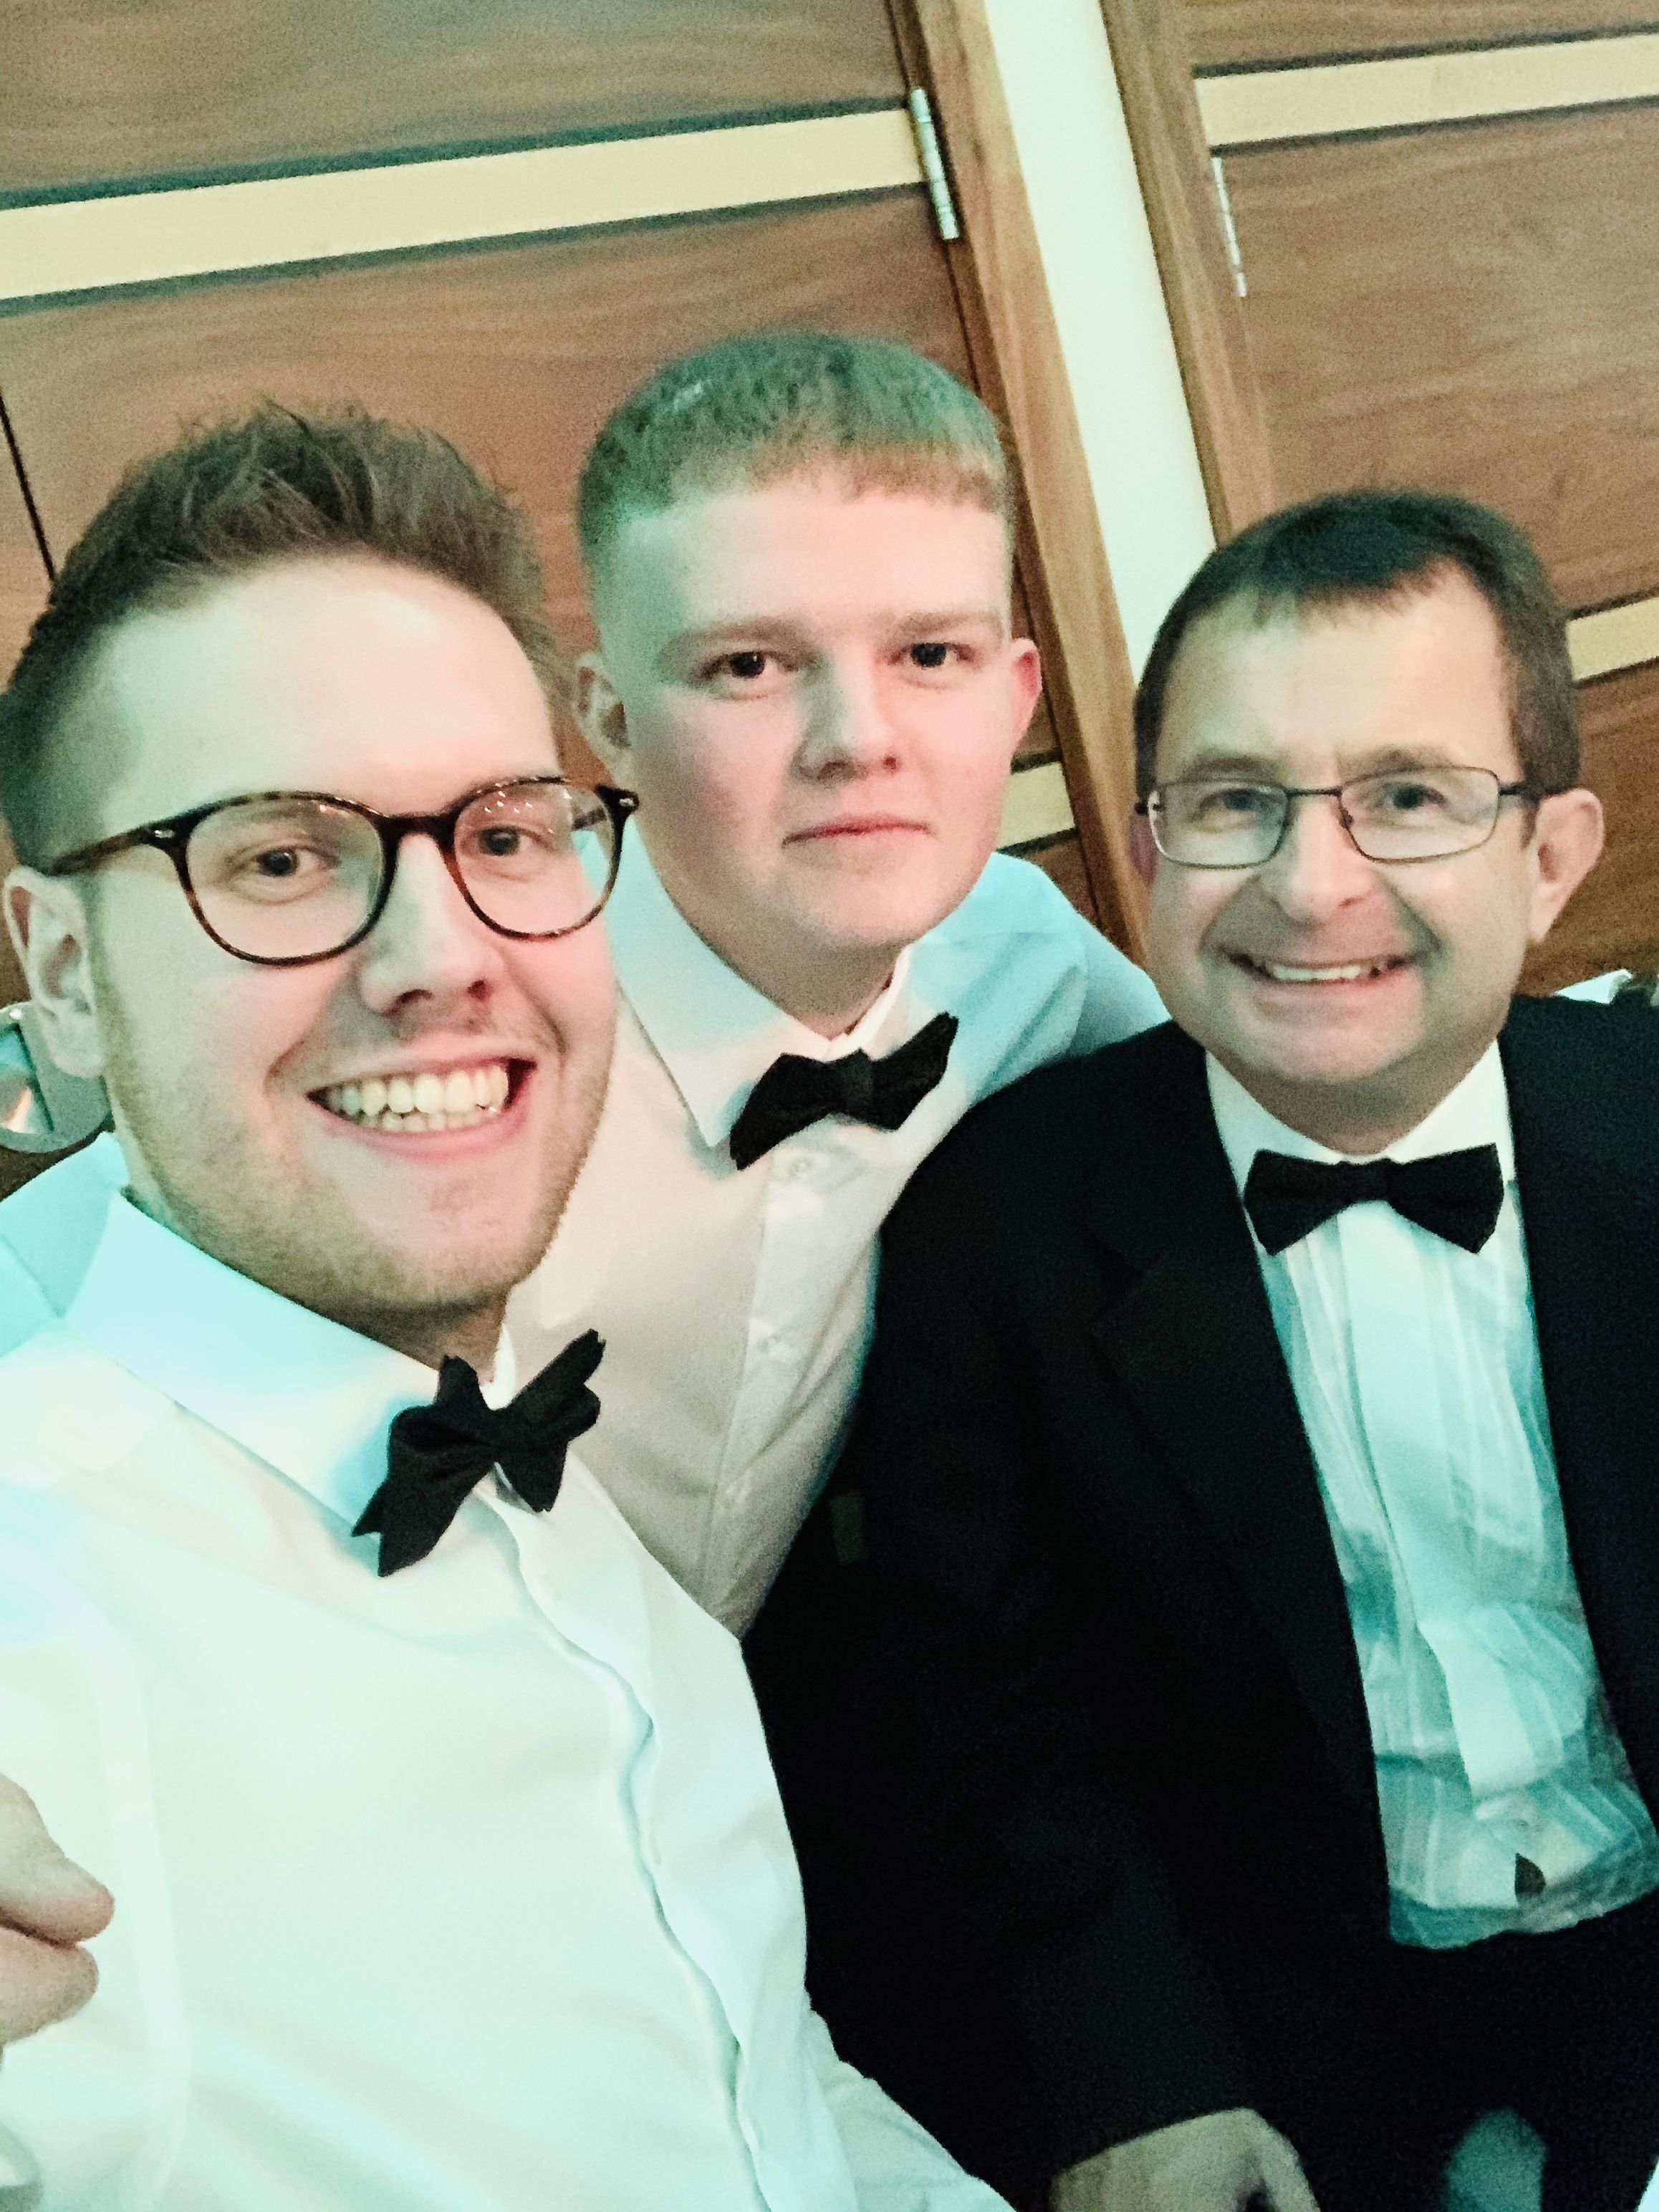 GBS gala dinner and awards evening 2019 Luke Smith Rian Swift and Iain Pickles